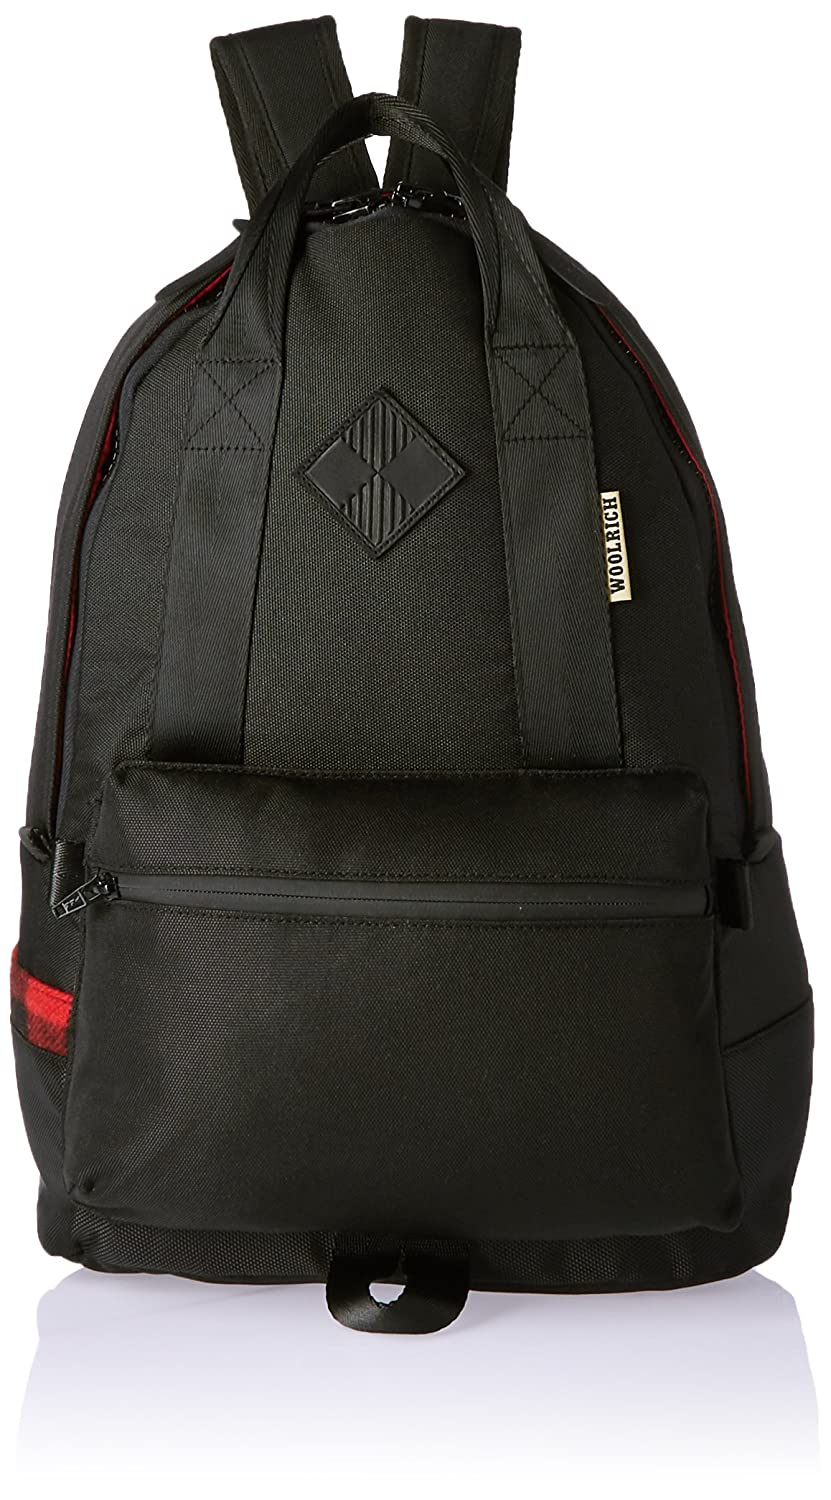 0f6587ae6 Amazon.com: Woolrich Woolrich X The Hill-side Daypack Bag, BLACK